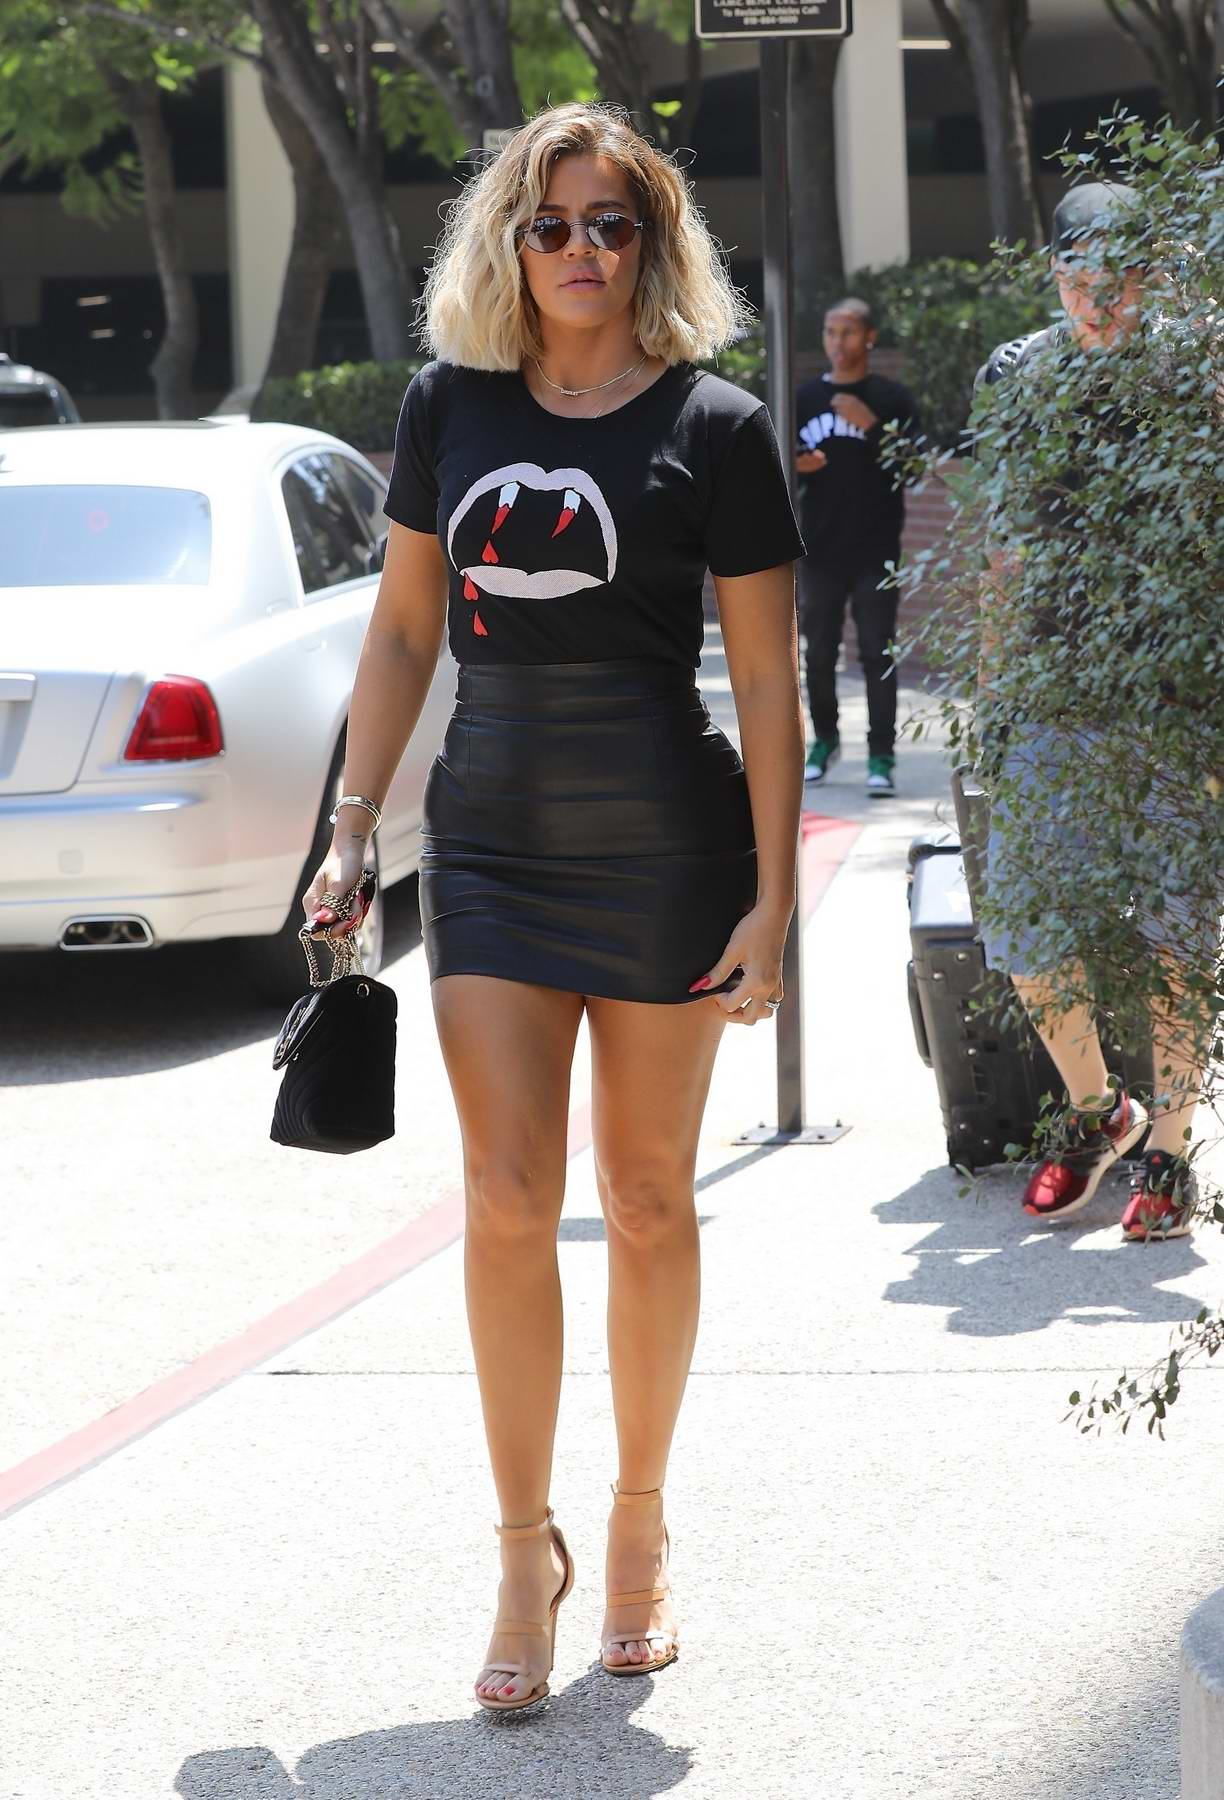 Khloe Kardashian in a black leather dress arrives at lunch in Los Angeles